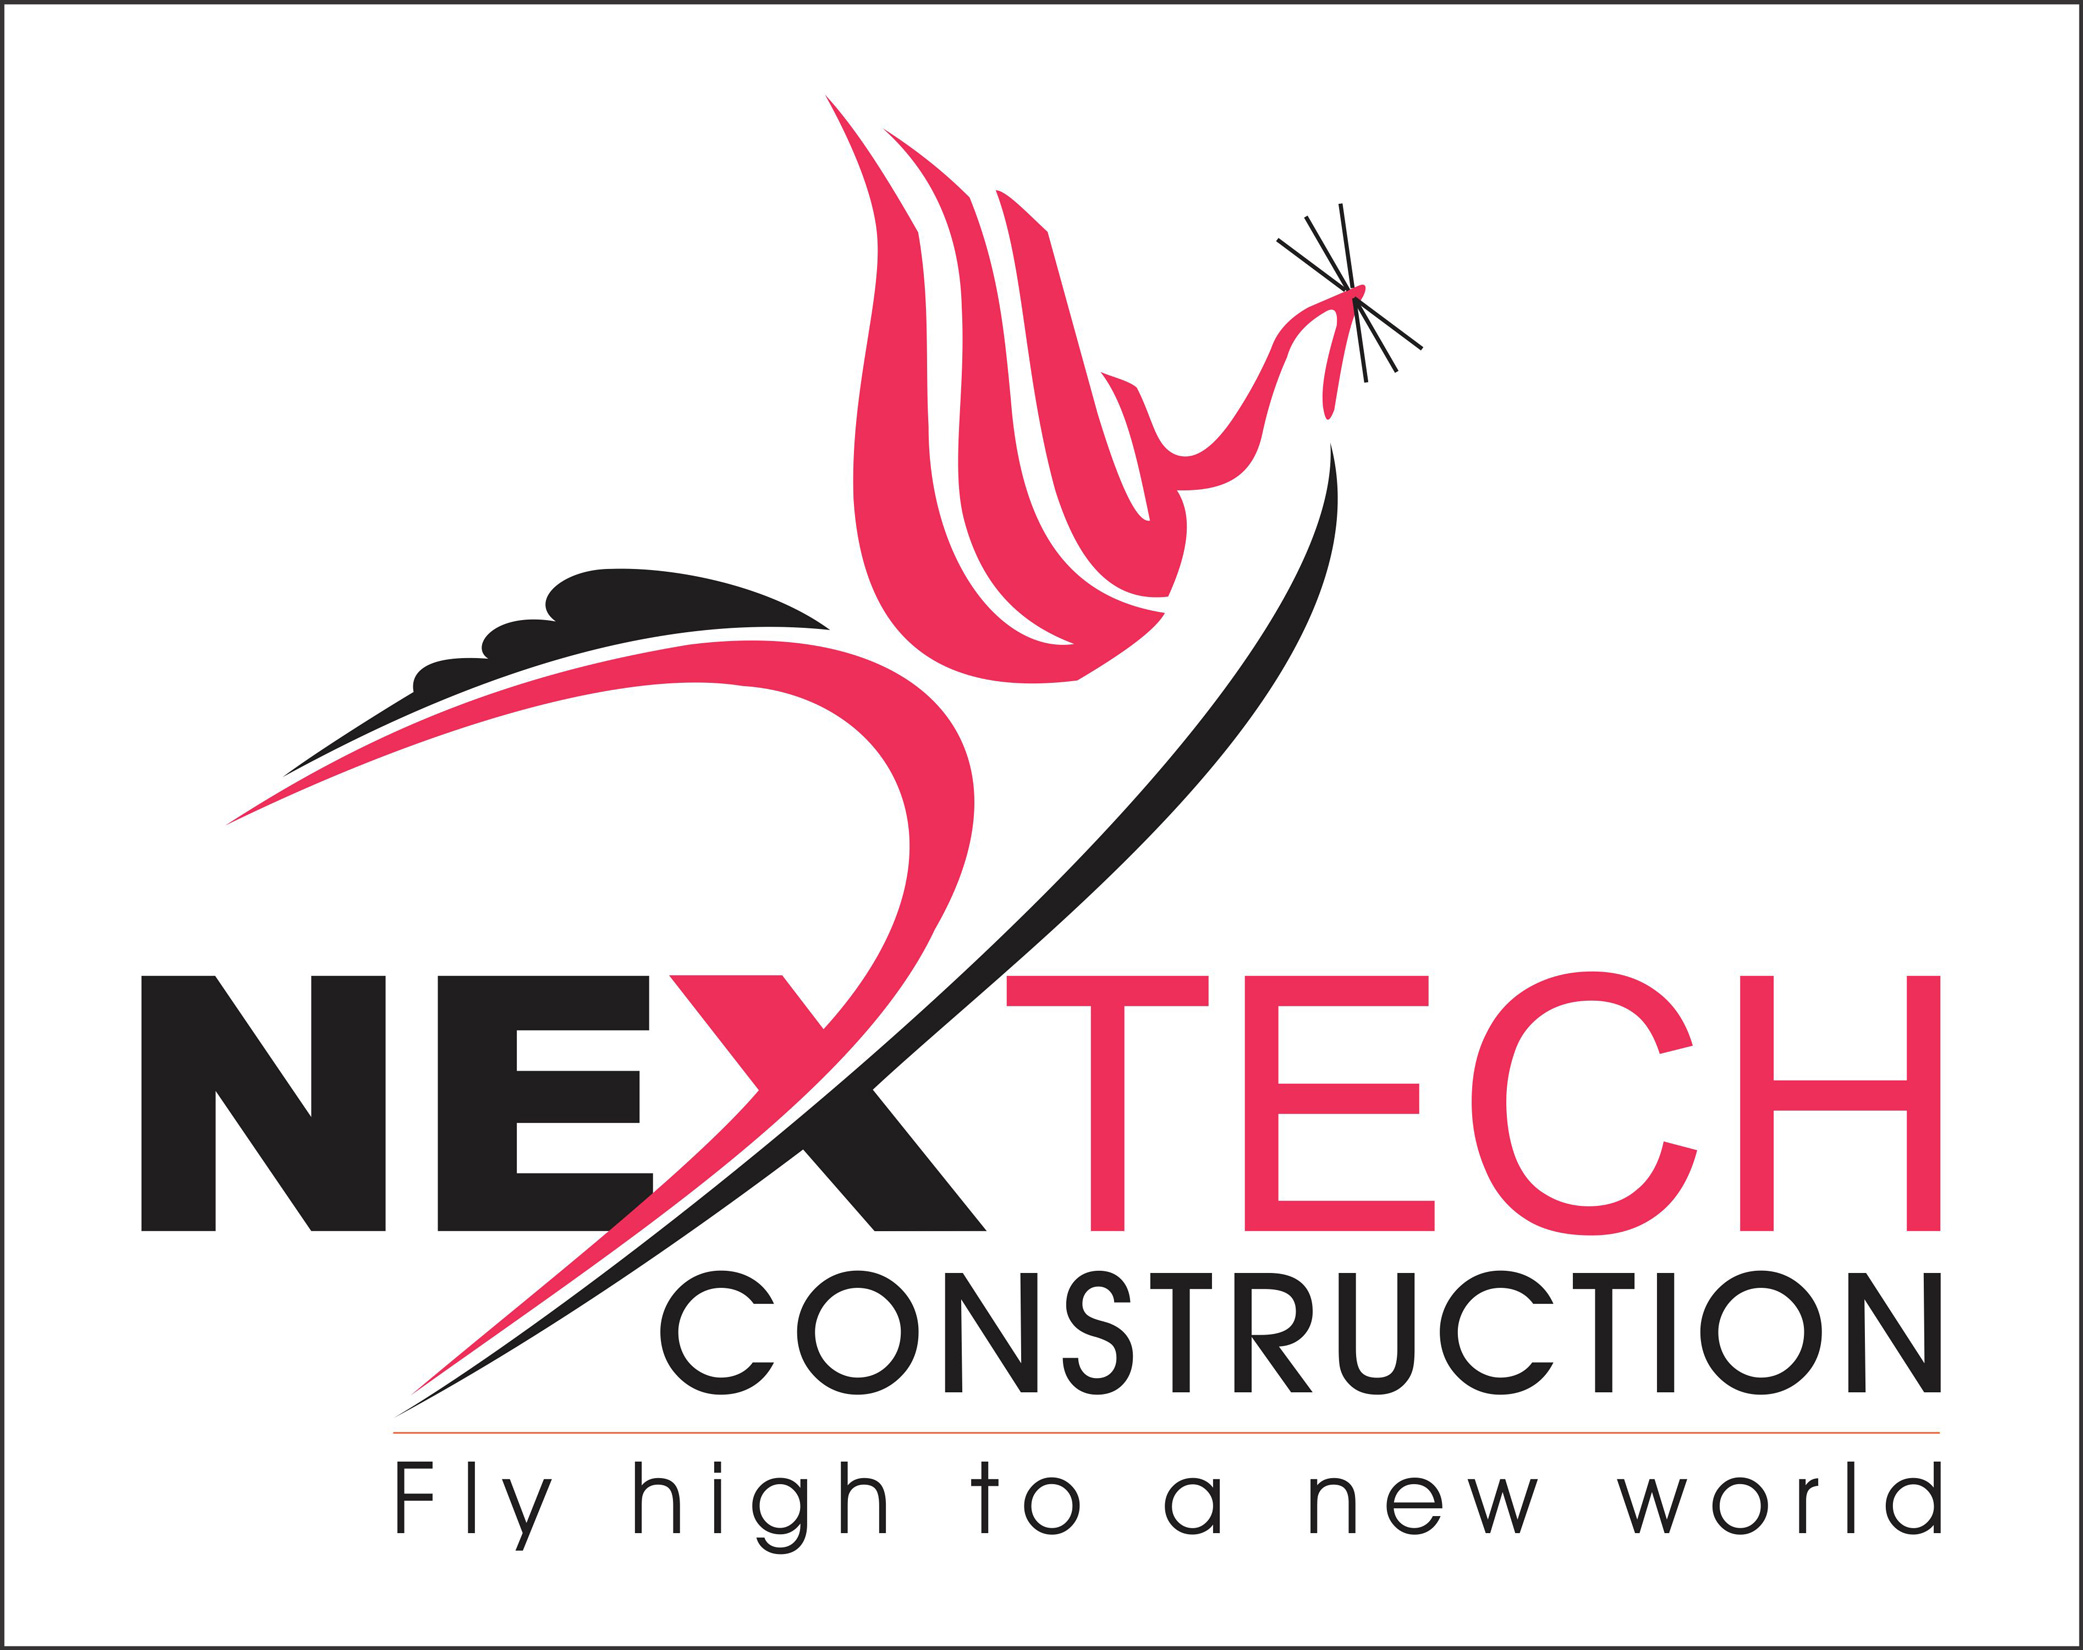 nextech-construction-logo-graphic-design